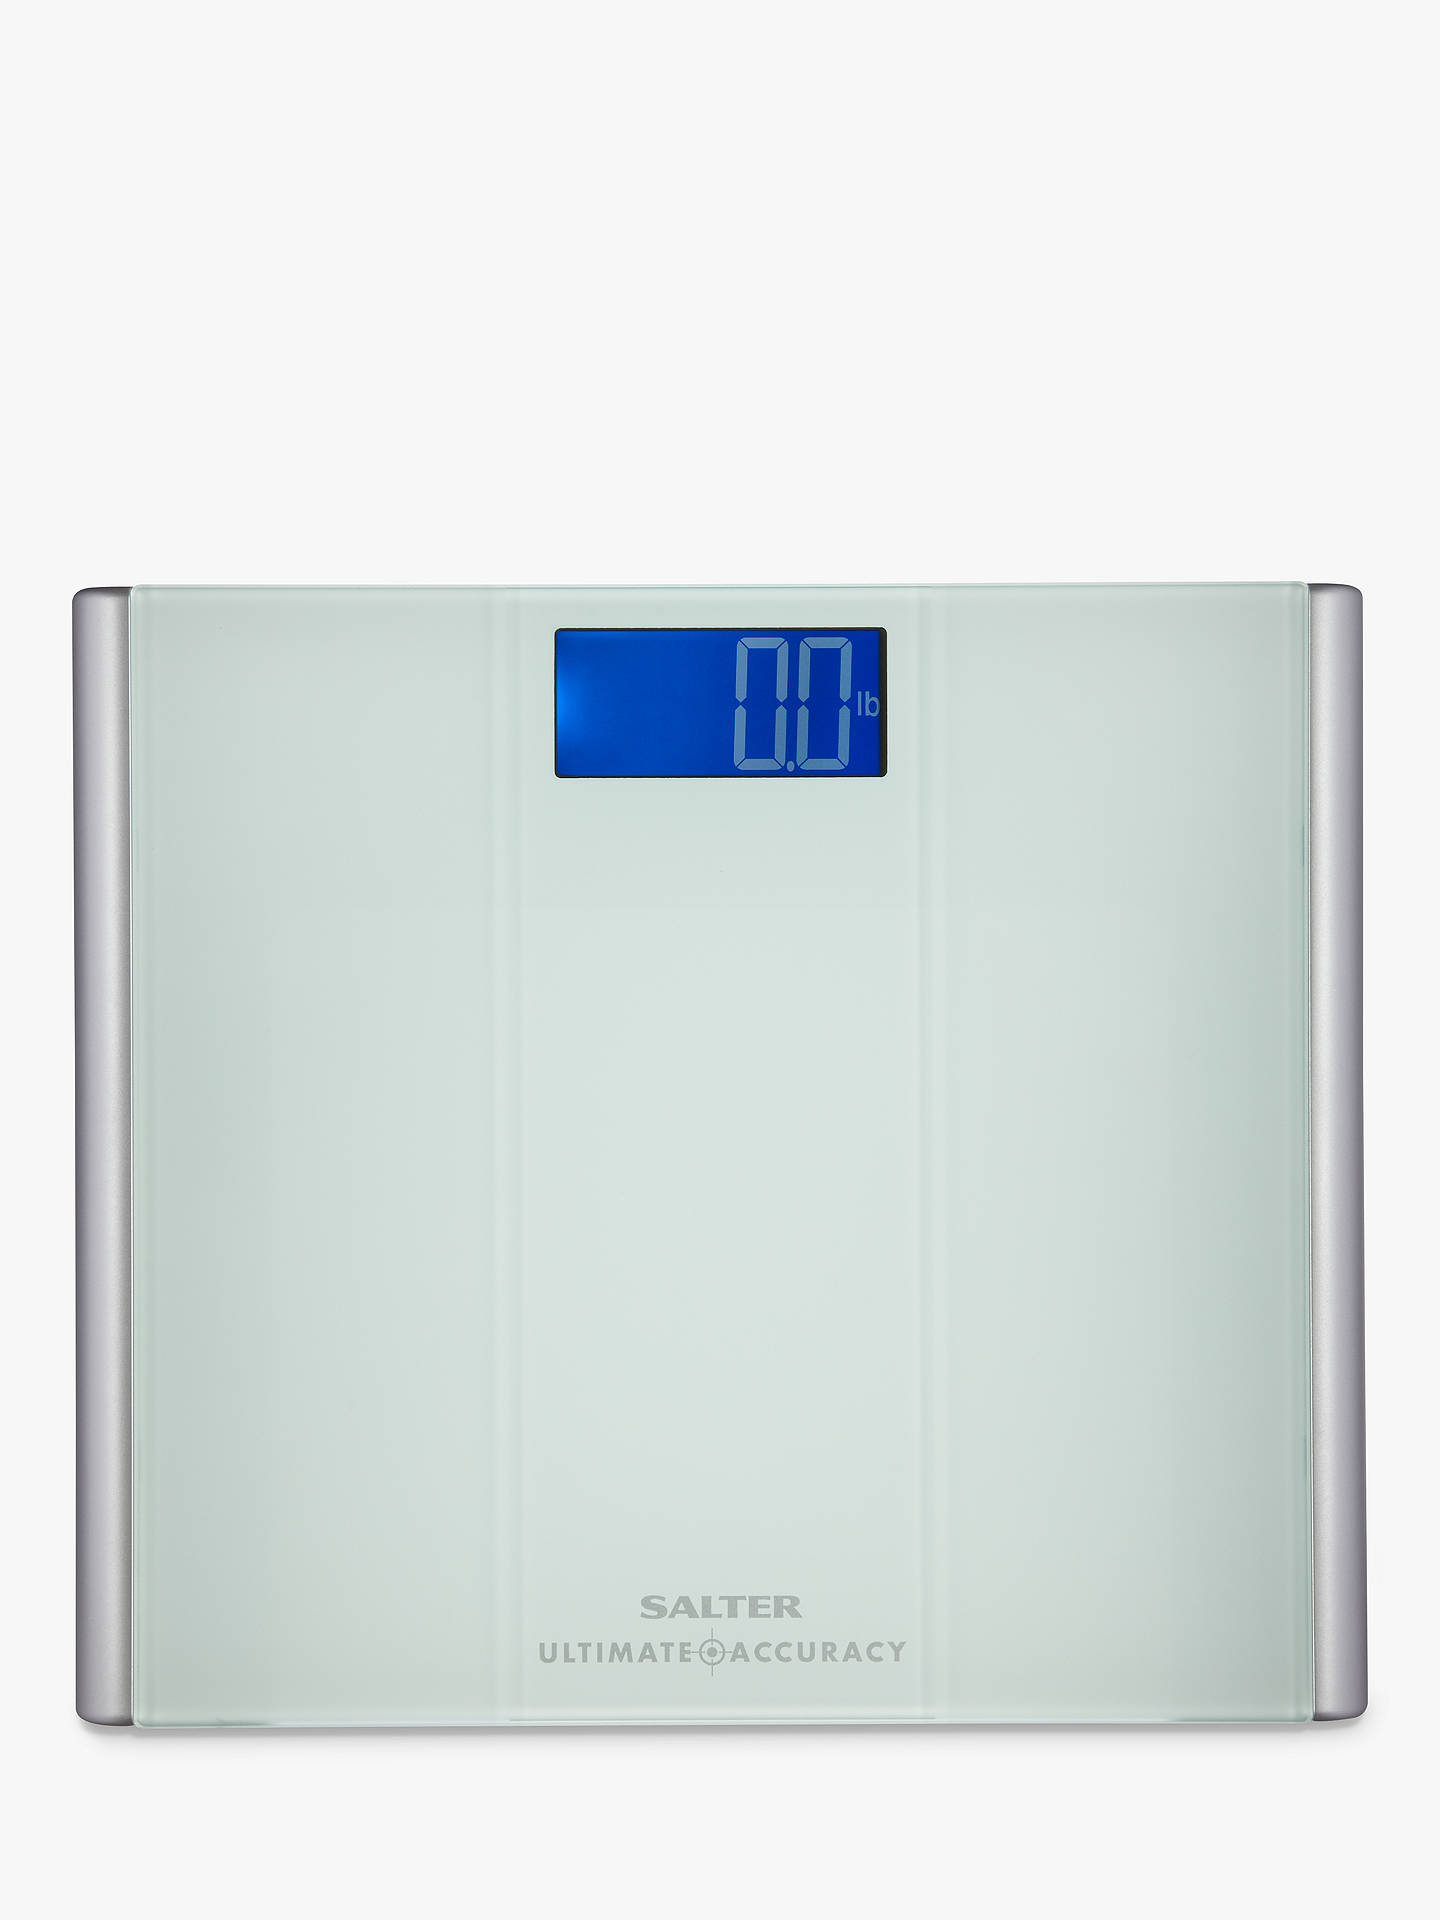 Salter Ultimate Accuracy Digital Bathroom Scale, Glass At